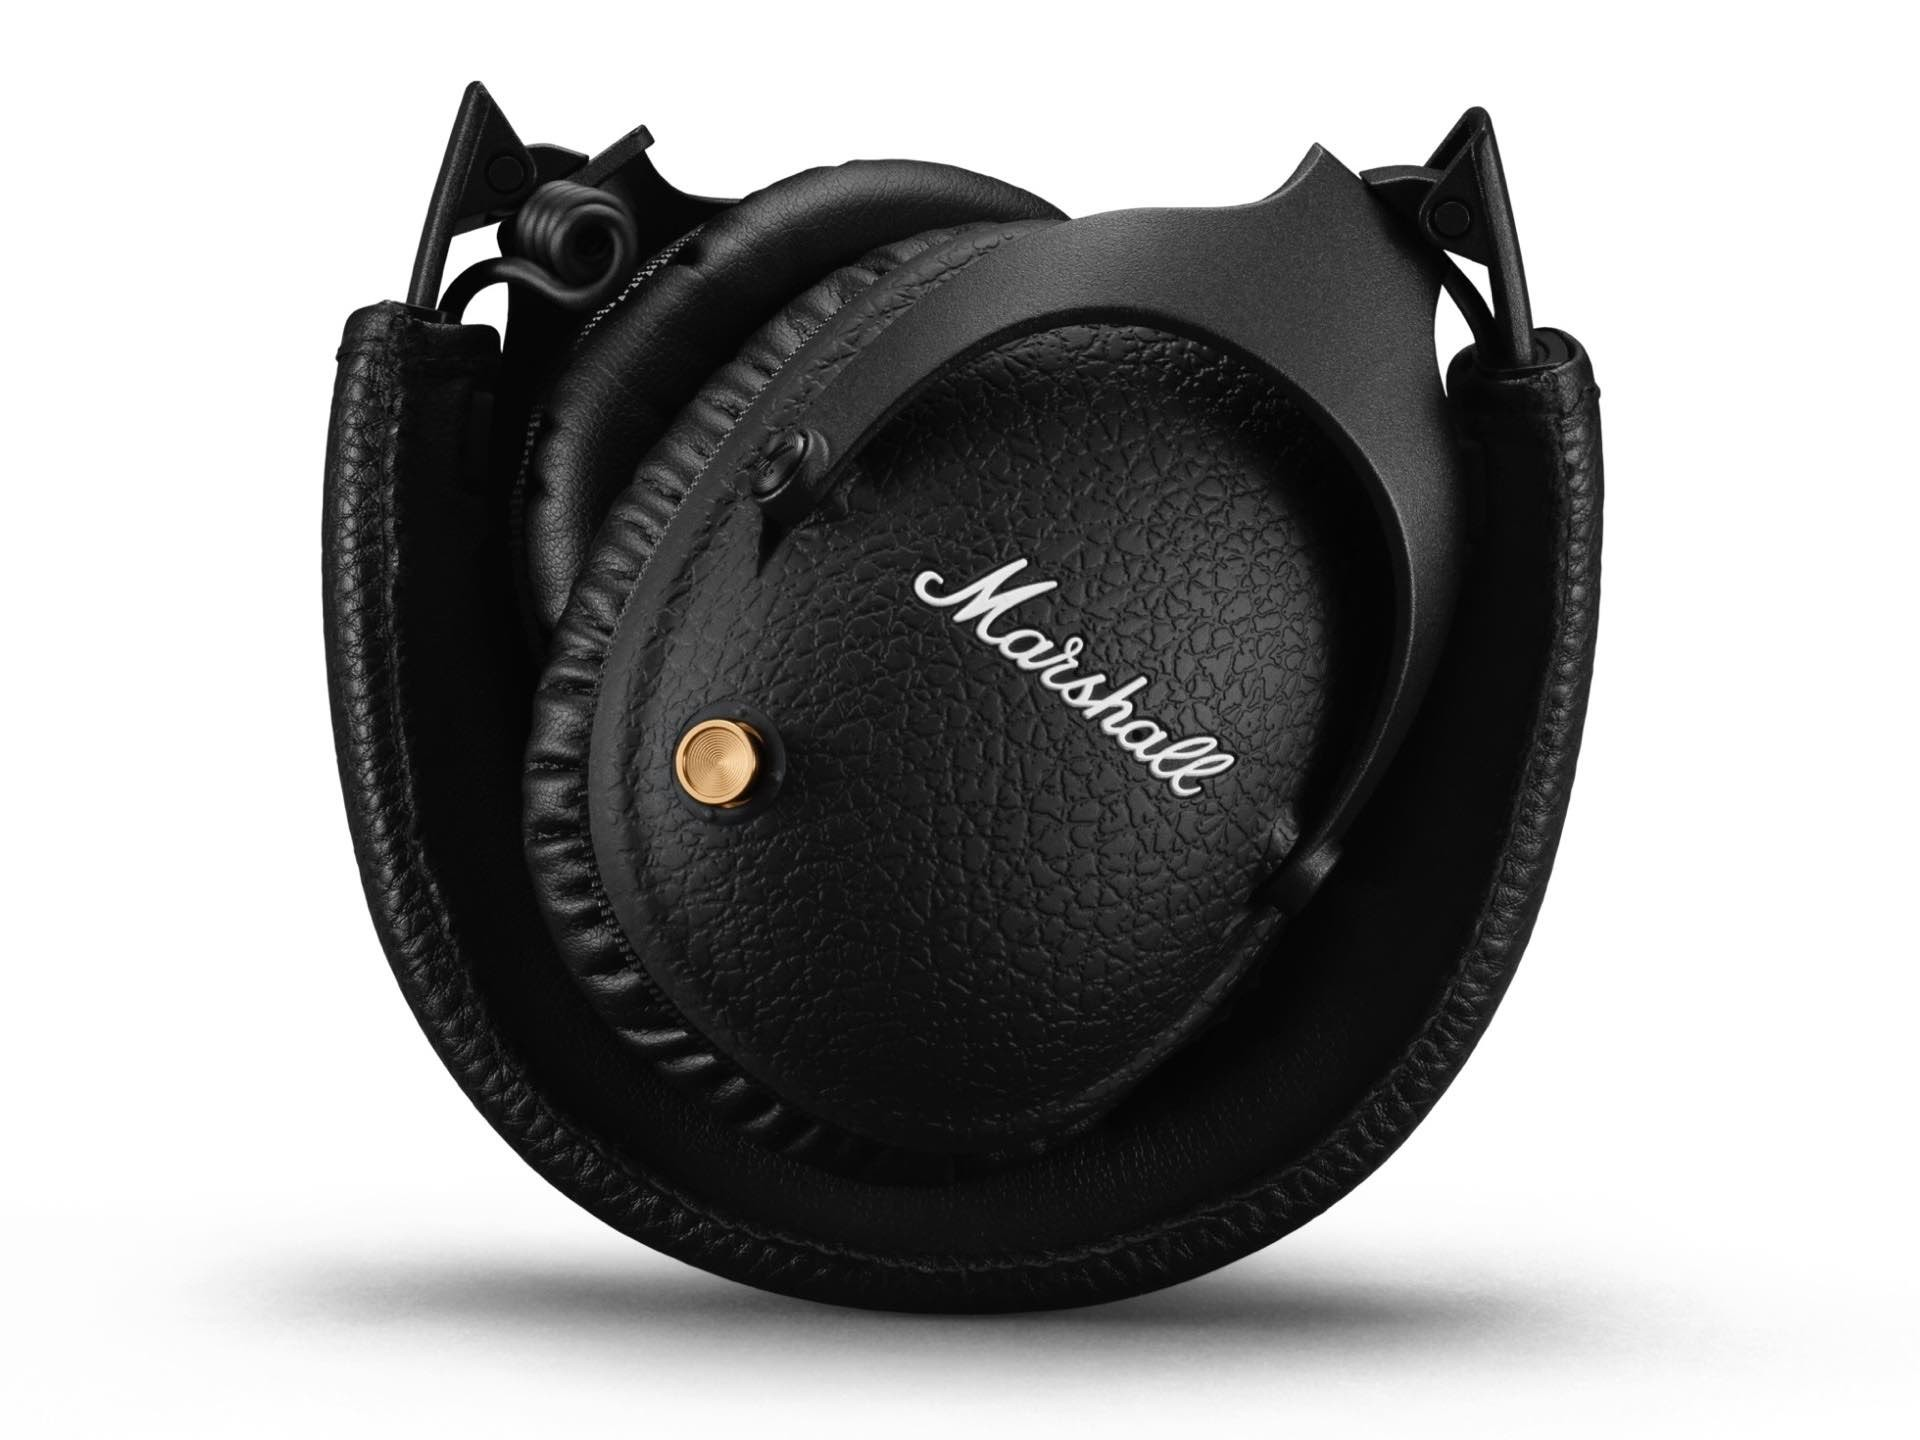 marshall-monitor-ii-anc-headphones-collapsed